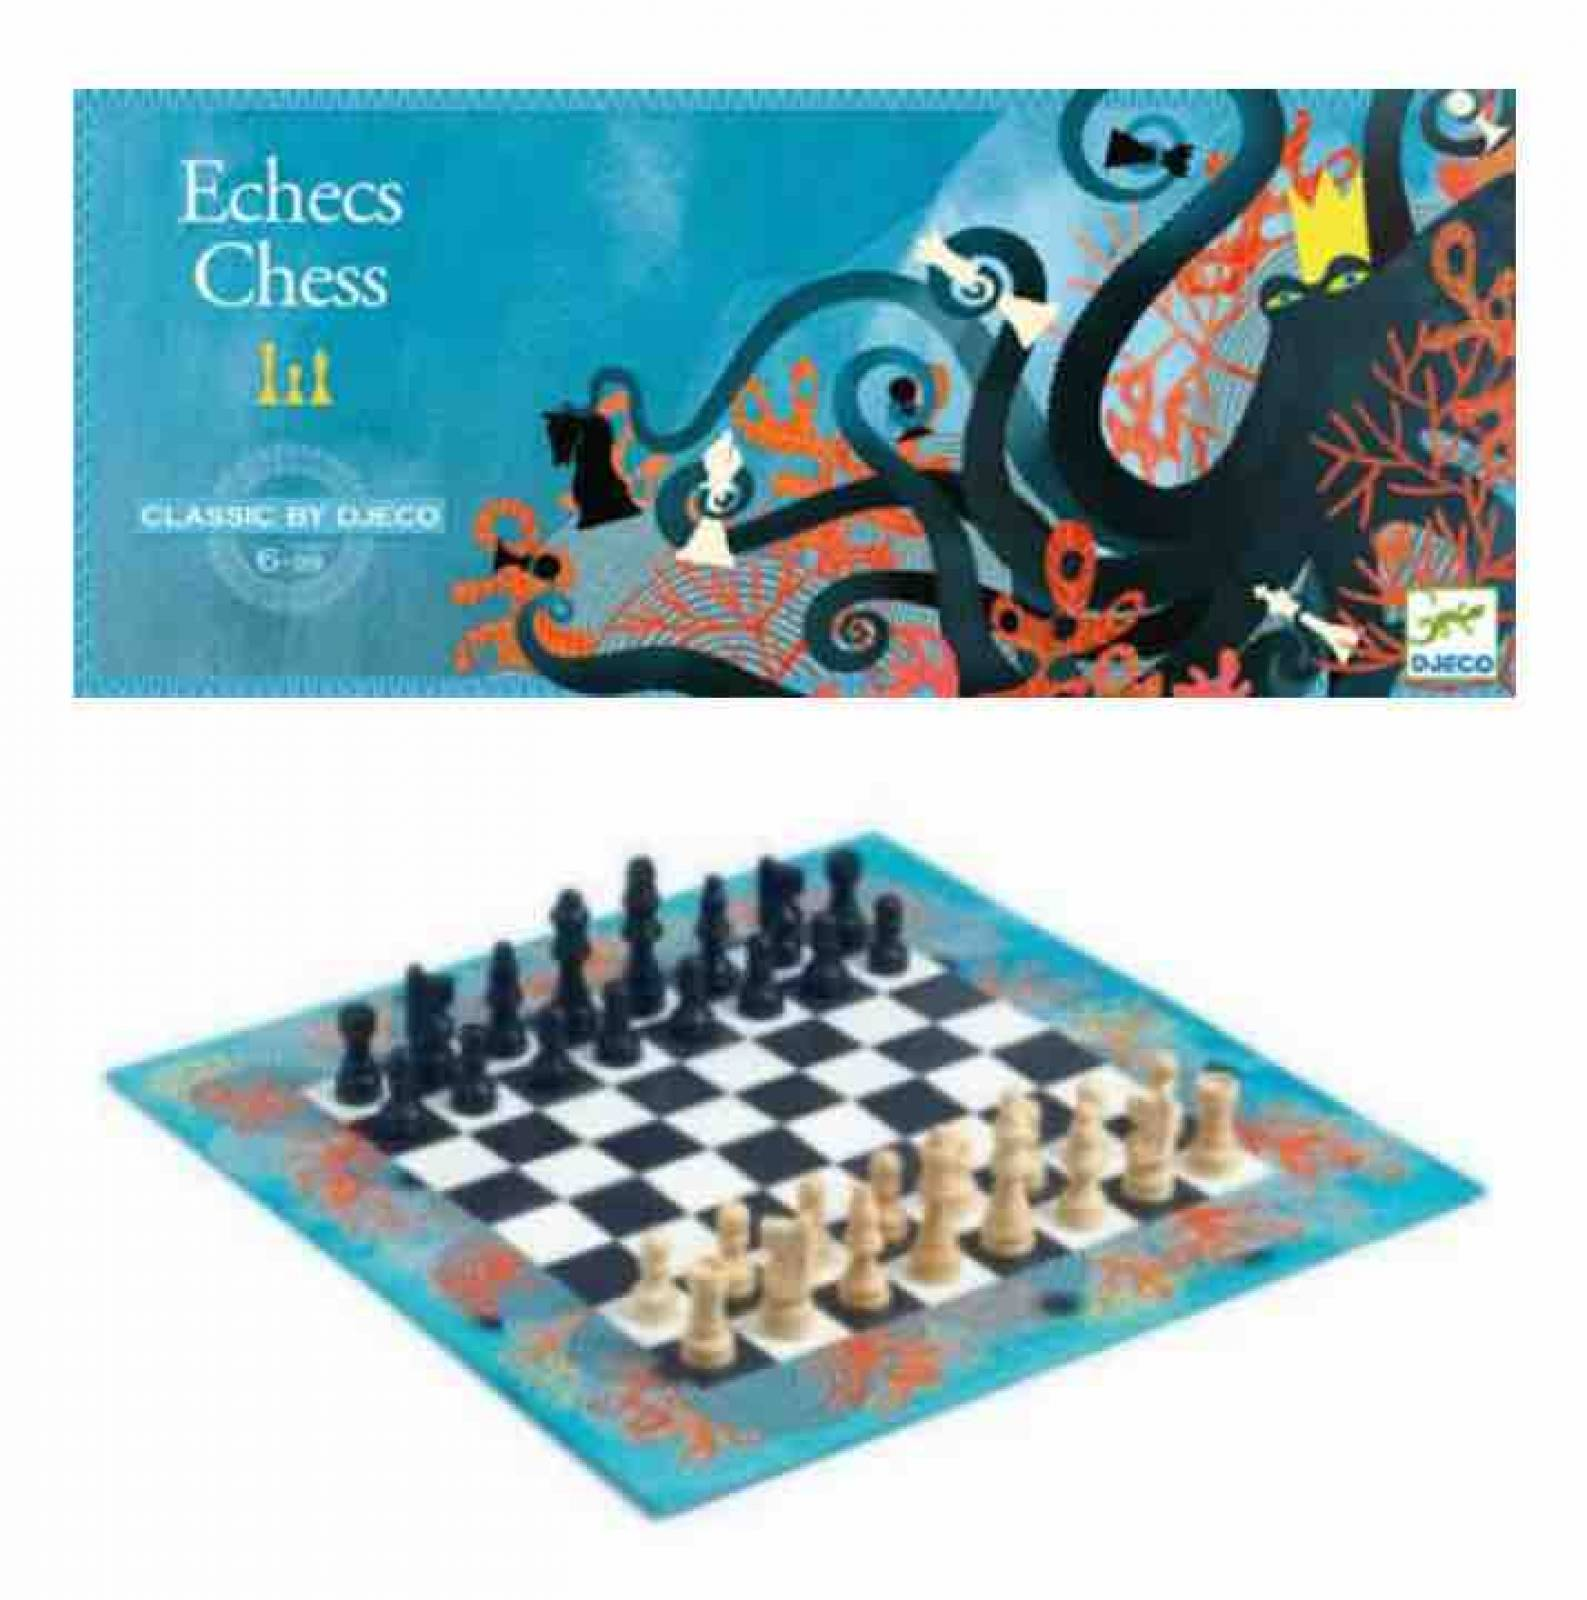 Chess Game By Djeco